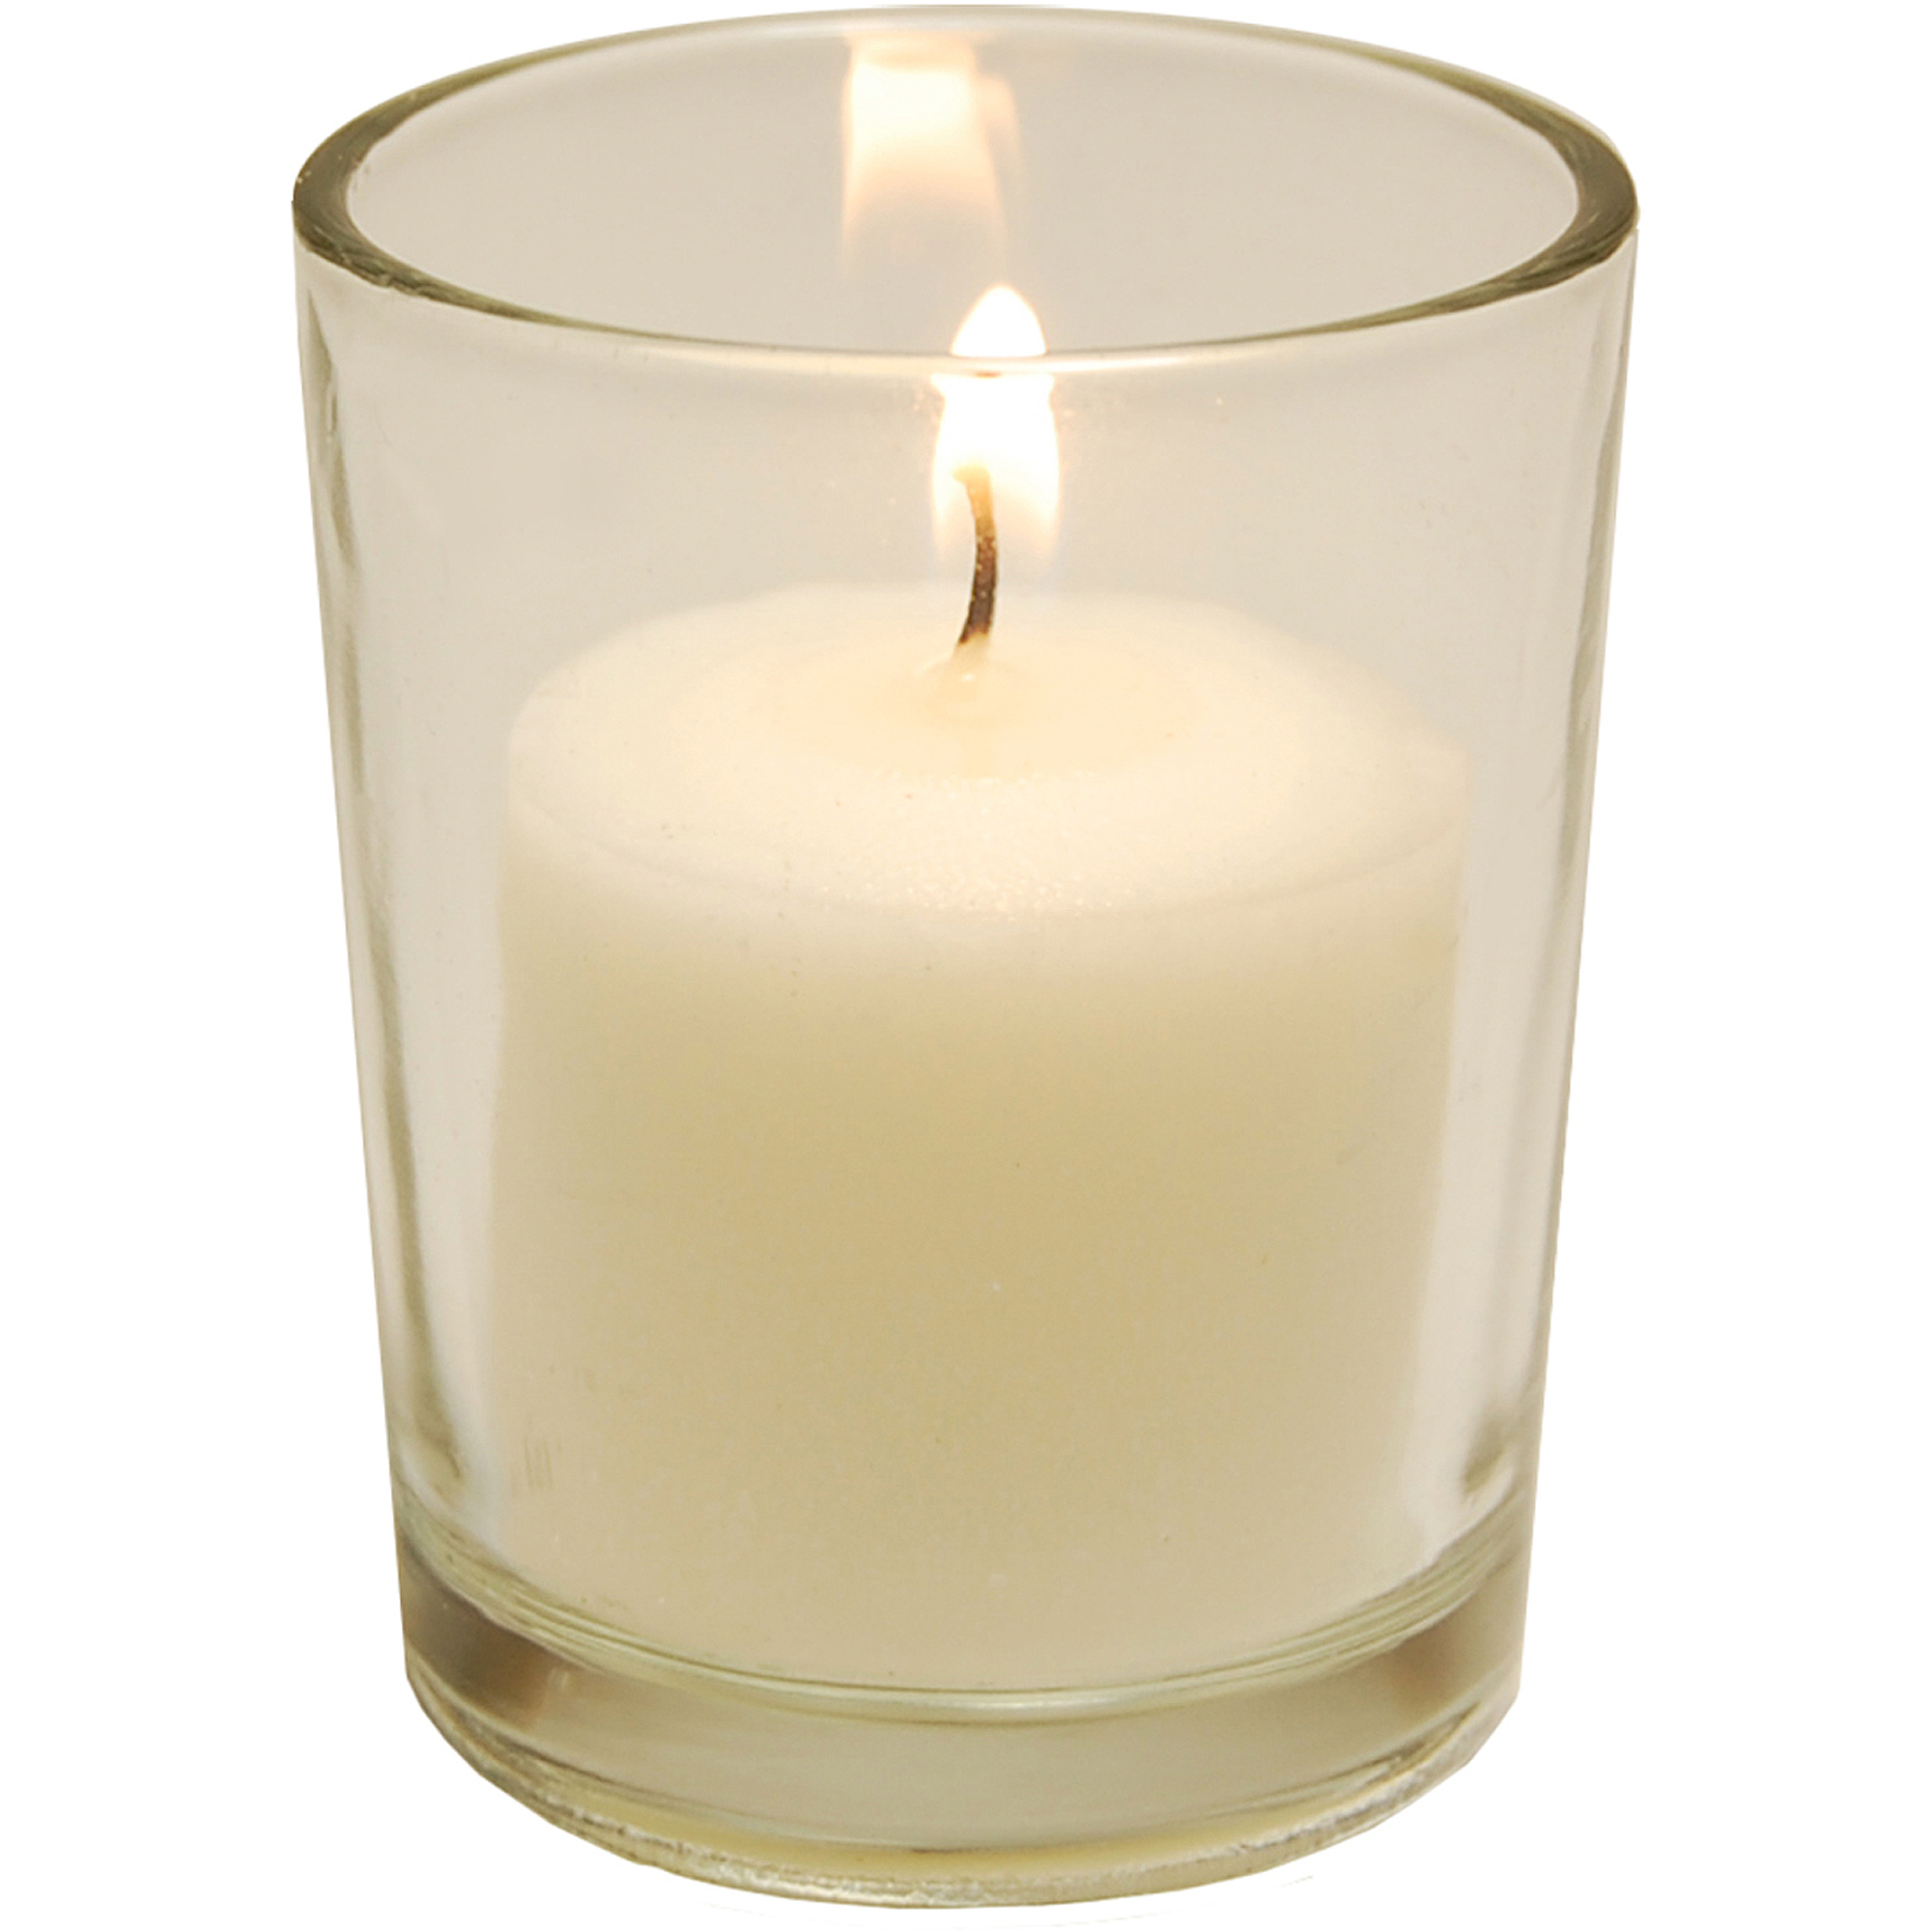 12 Glass Candle Holders with Seventy-Two 10-Hour Votive Candles in Clear or Frosted